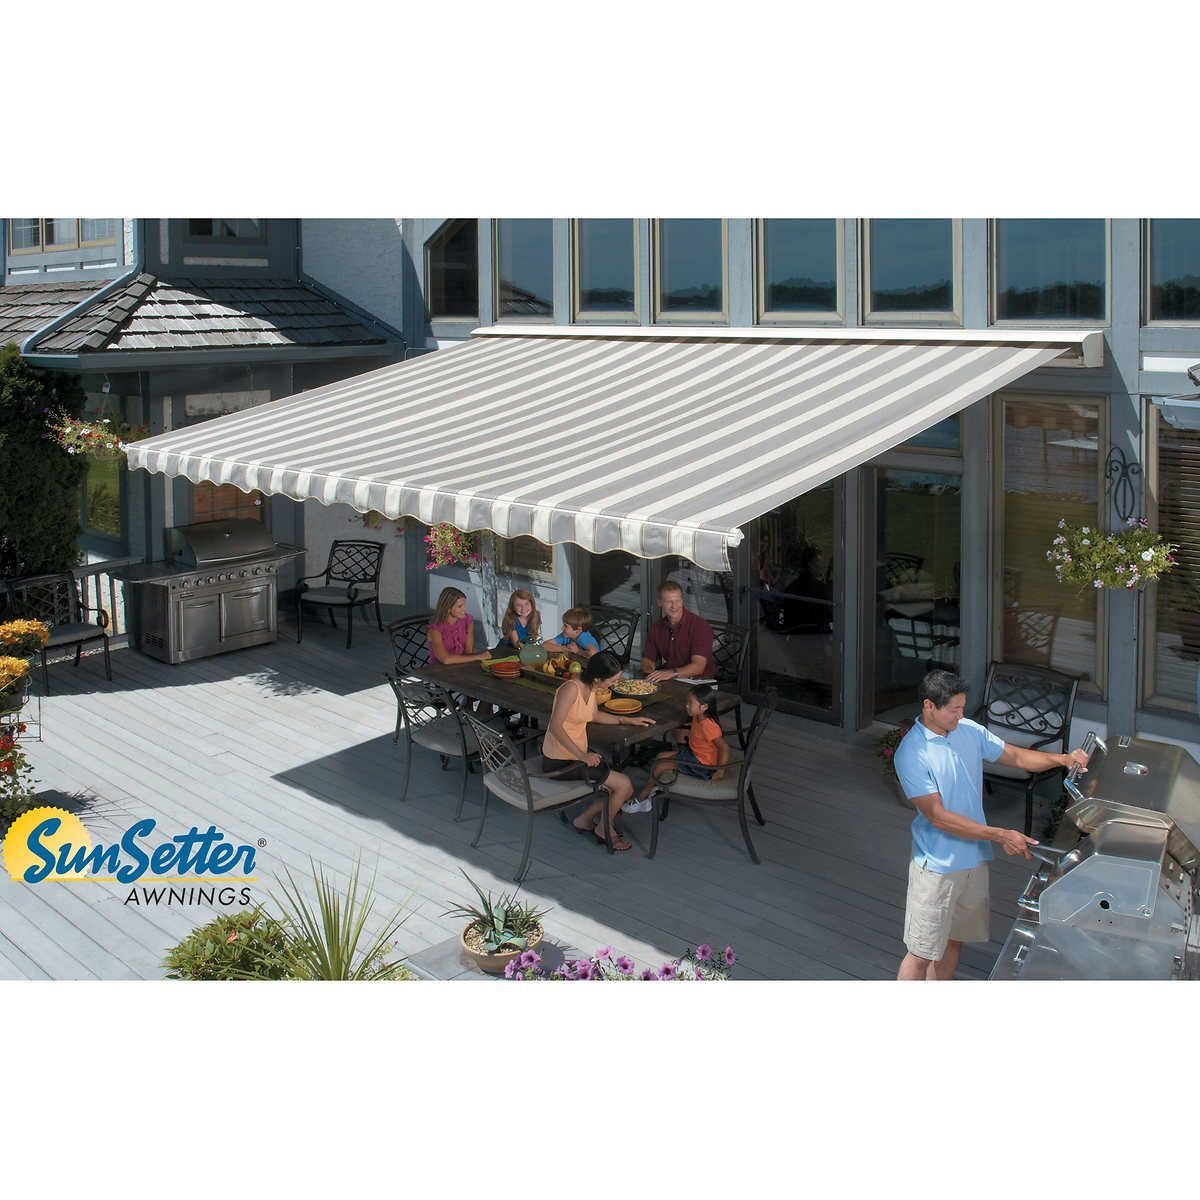 Pin By Edwin Mejia On Ideas Para Patios In 2020 Retractable Awning Retractable Pergola Fabric Awning